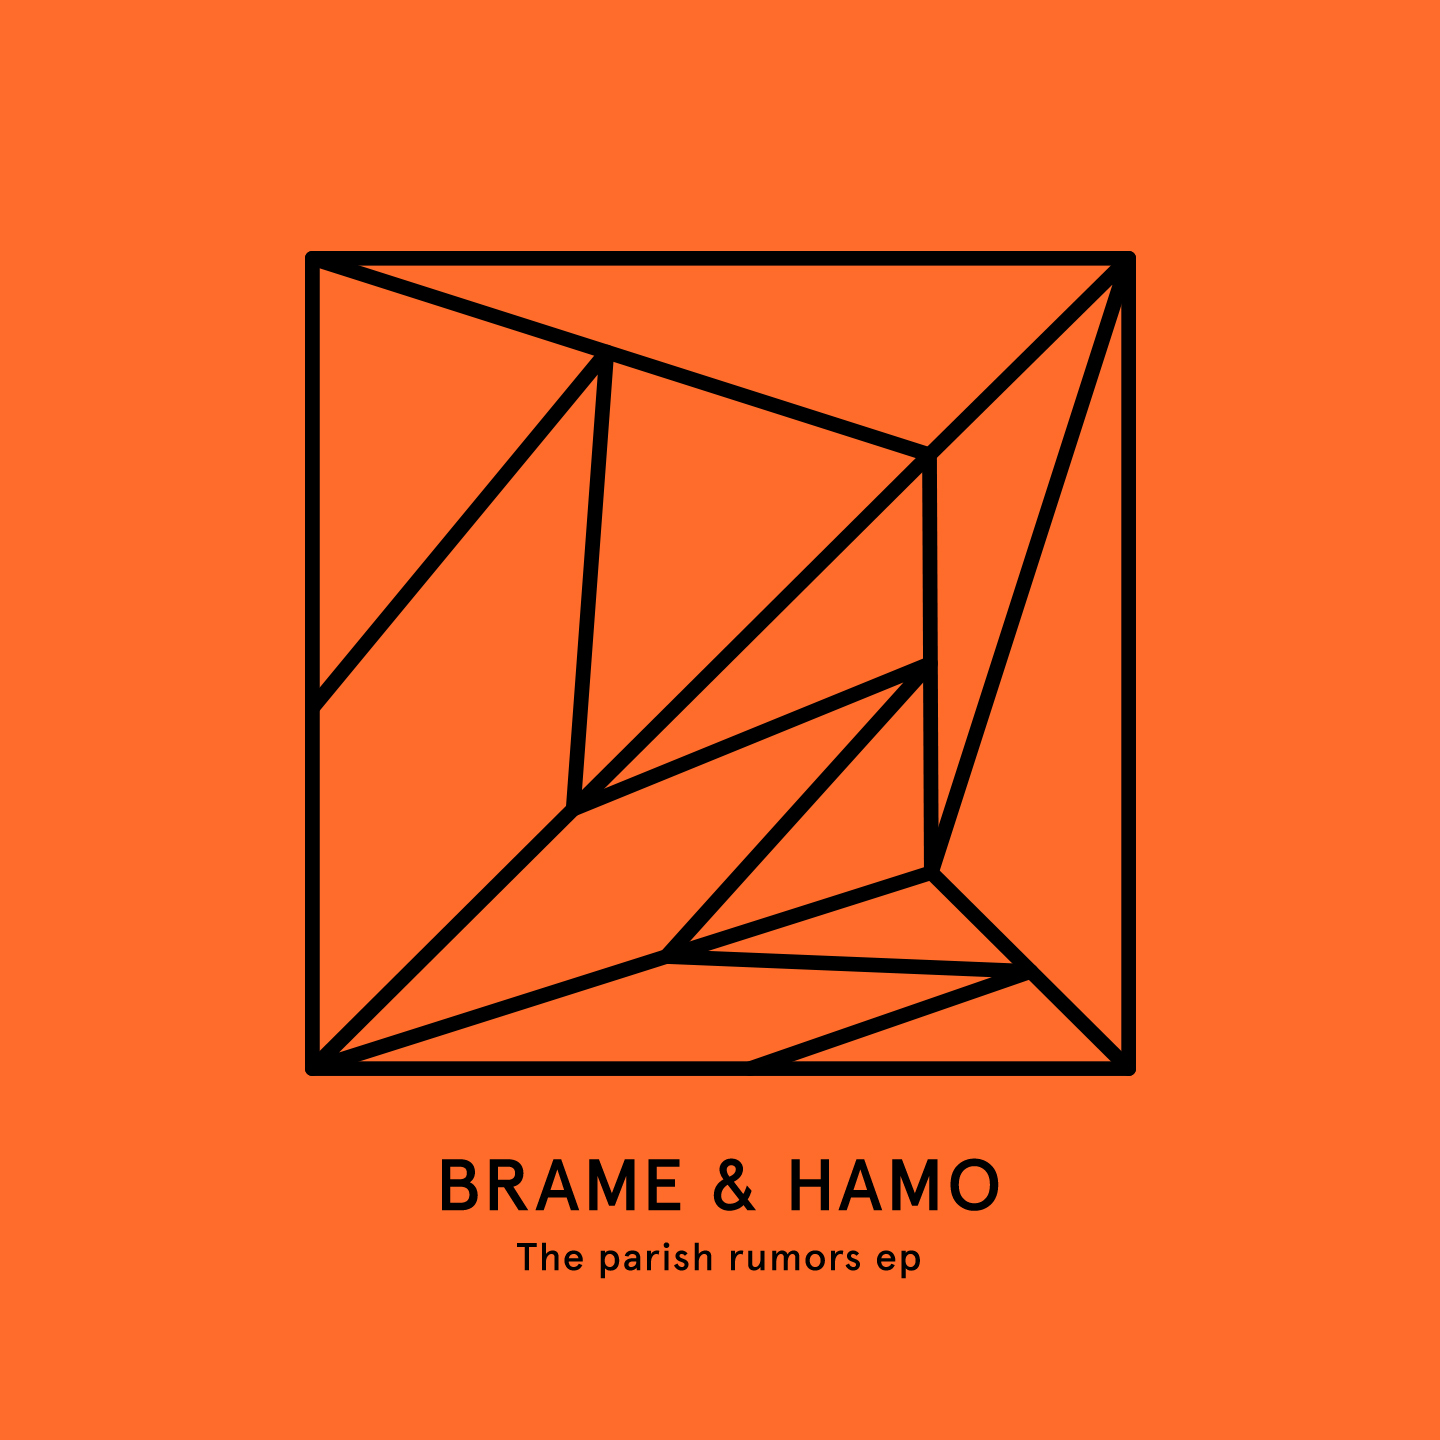 Brame & Hamo - The Parish Rumours